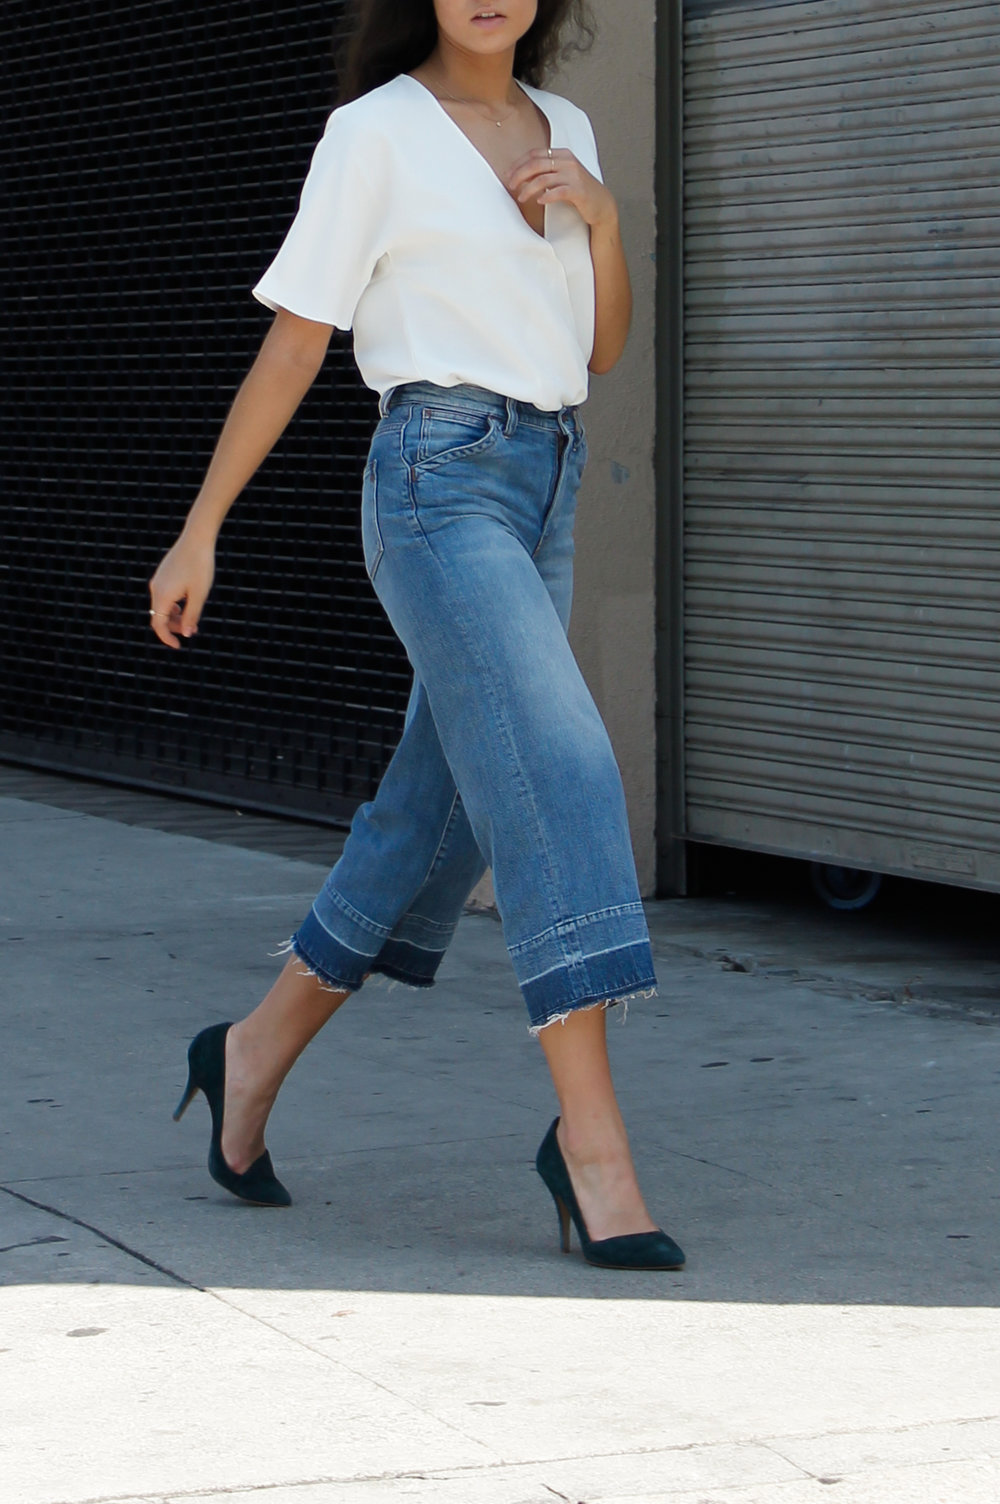 caitlin_miyako_taylor_summer_jeans_for_fall